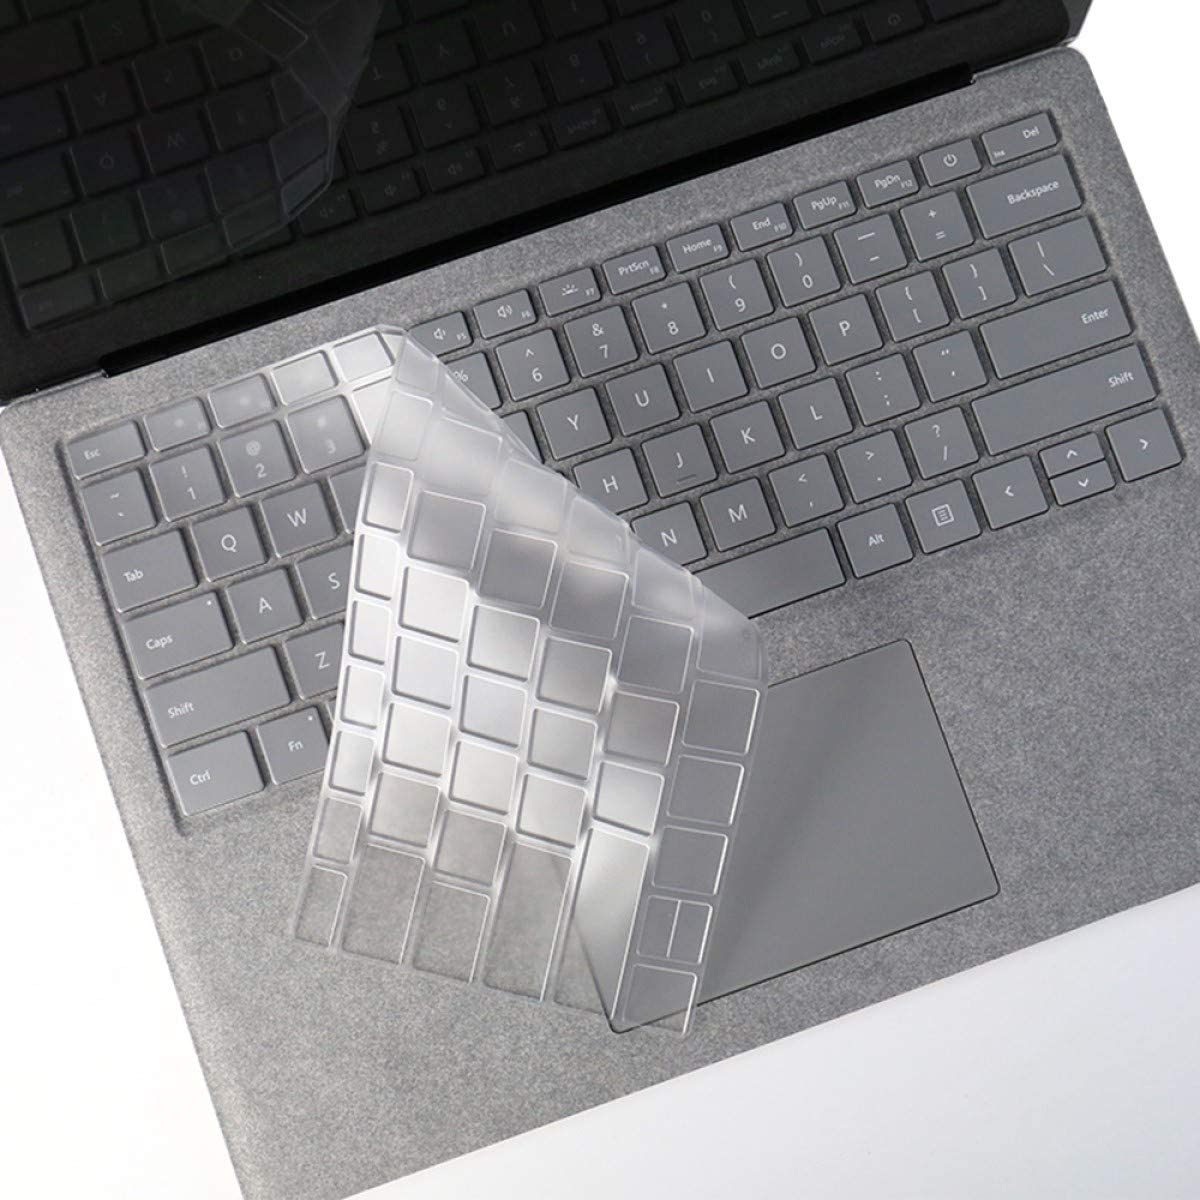 """FORITO Keyboard Cover Compatible with 2020 2019 Surface Laptop 3/2018 Released Surface Book 2/ Microsoft Surface Laptop (2017) & Surface Book 2 13.5"""" and 15""""(NOT Fit for Surface Pro 2017) -TPU"""